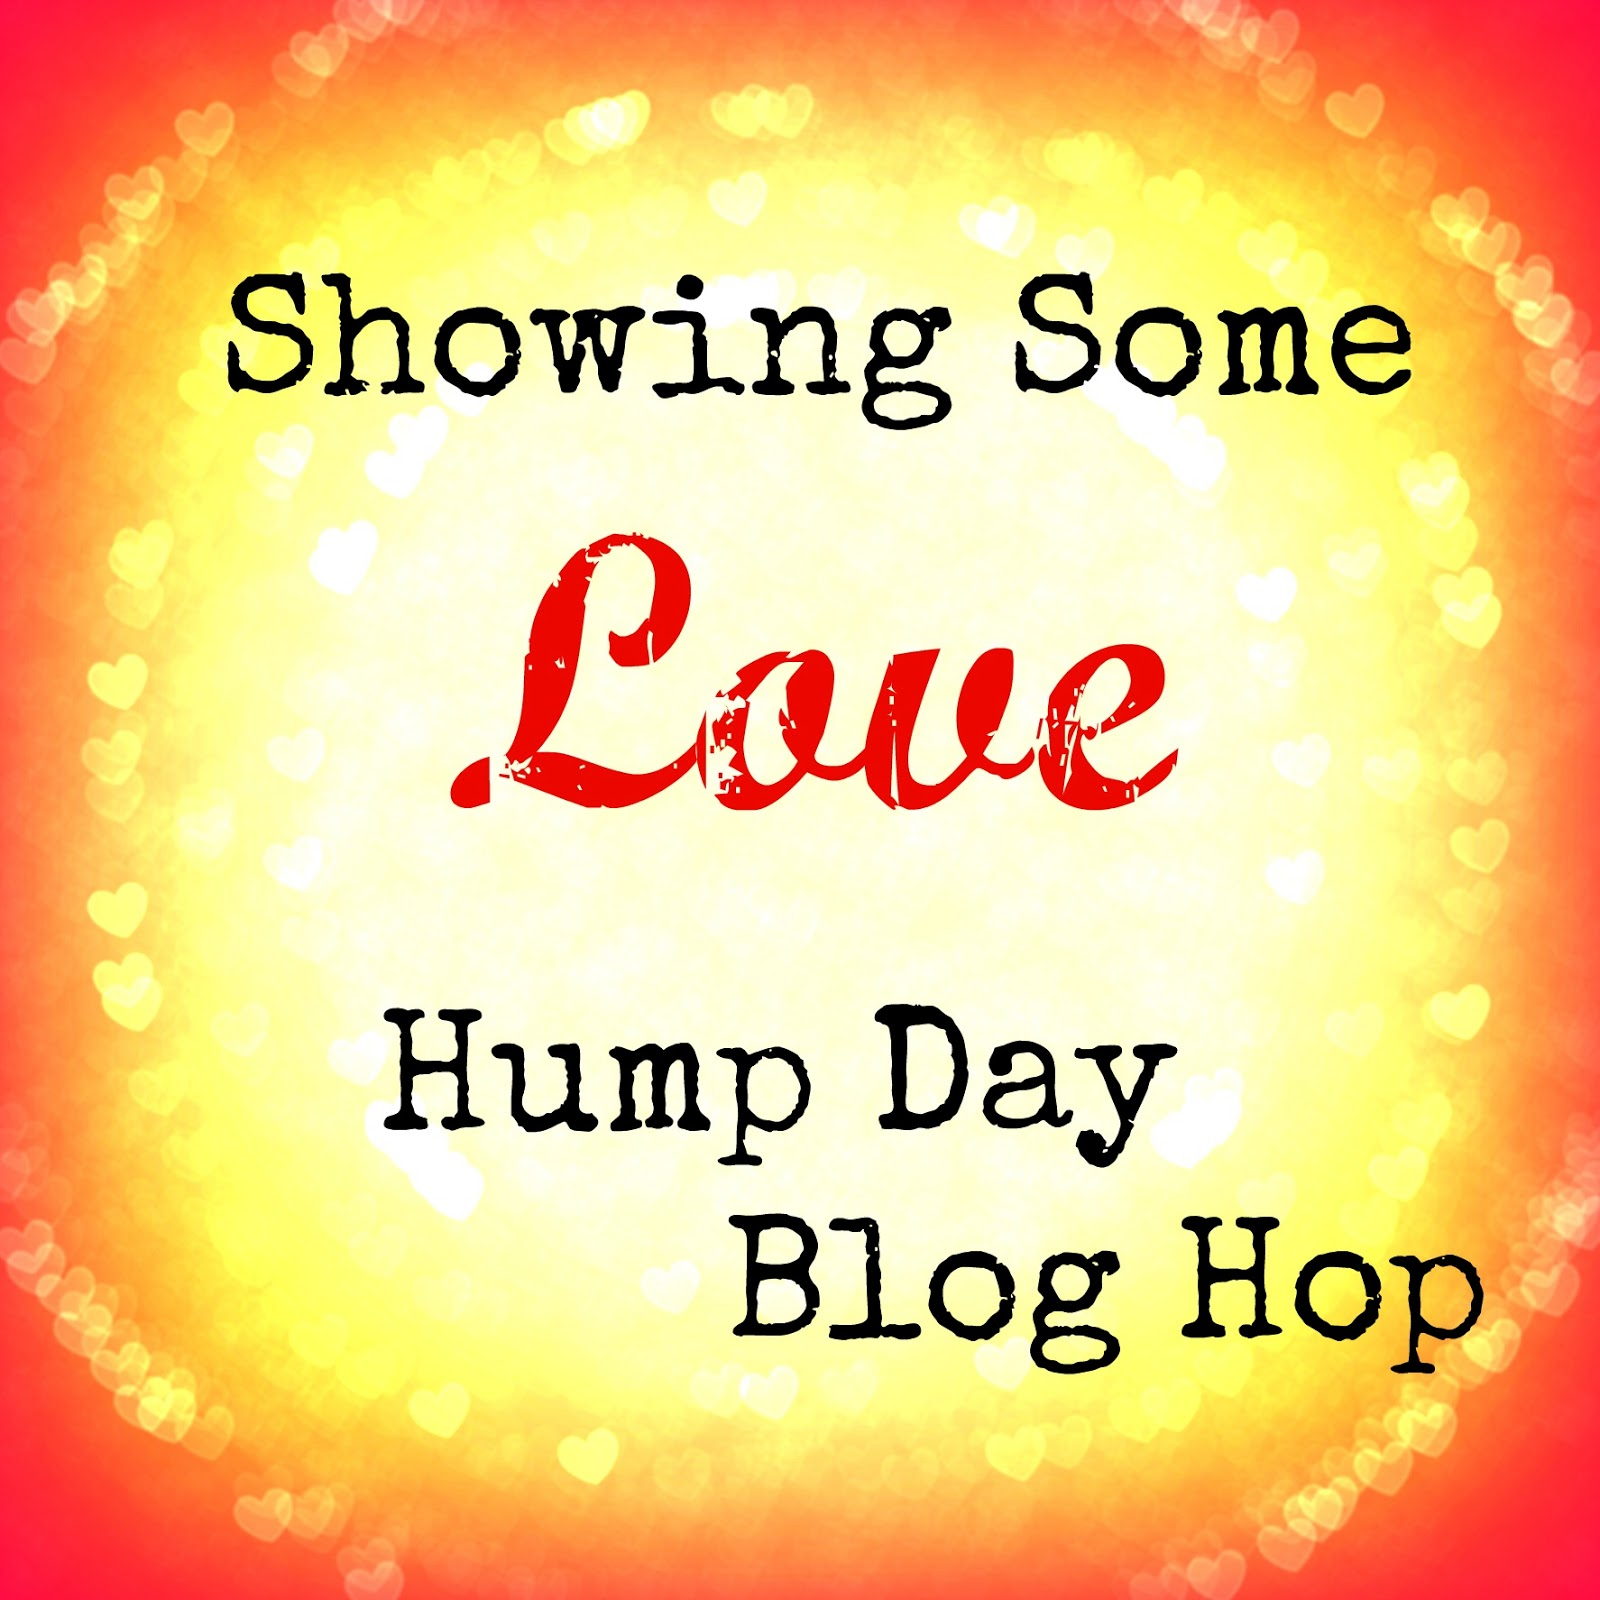 26 happy hump day clip art free cliparts that you can download to you ...